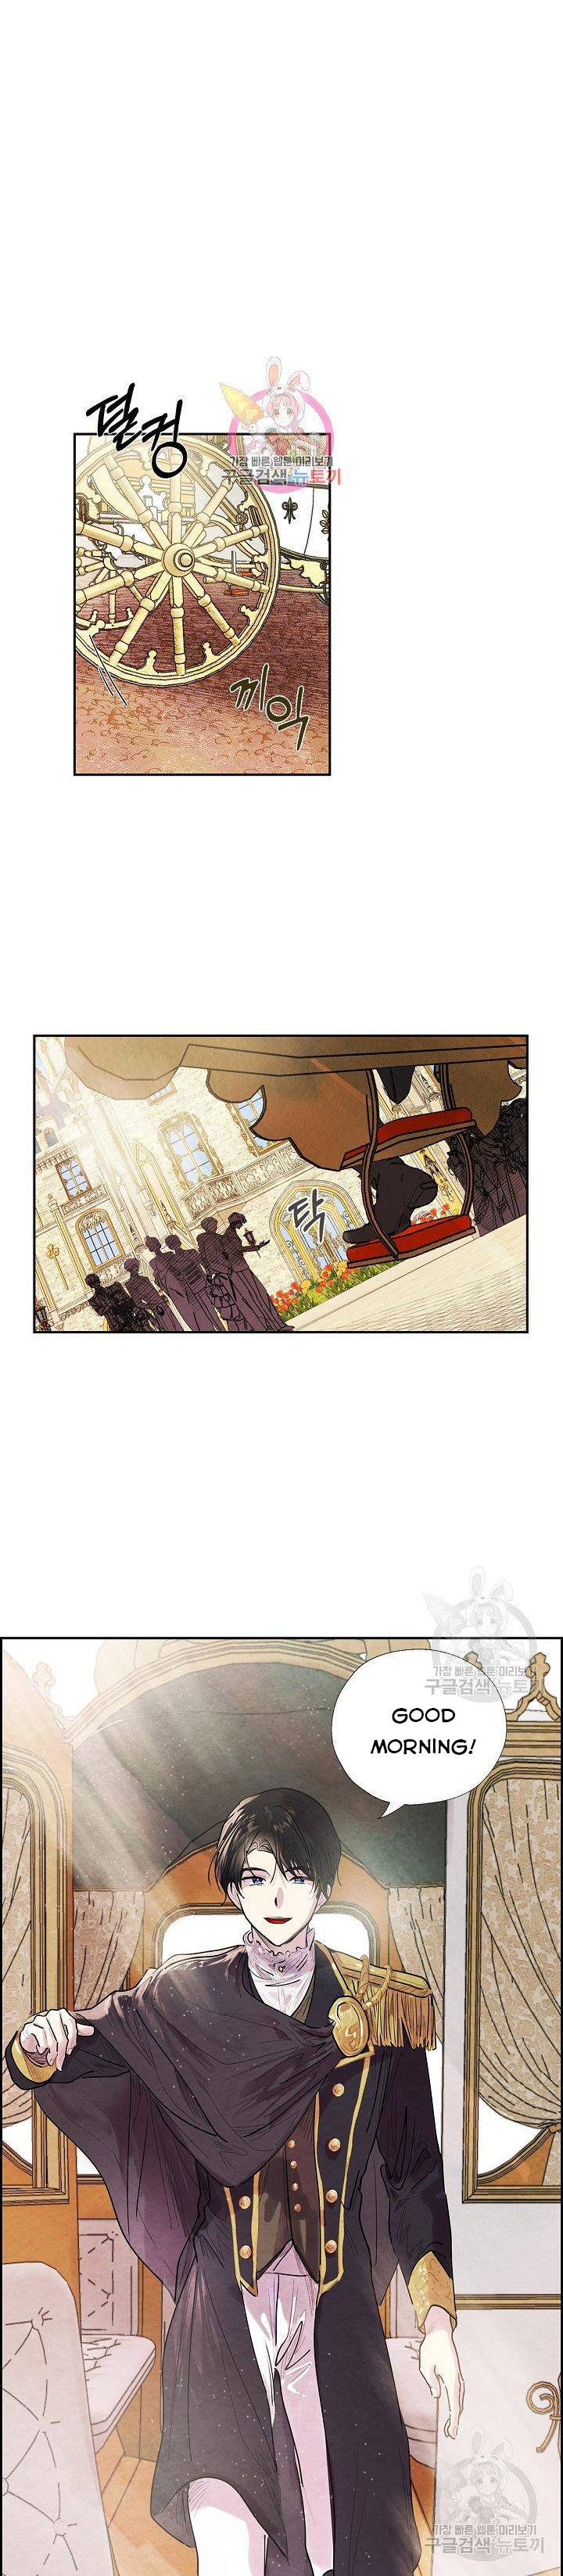 The Villainess Wears an Idiot's Mask - chapter 7 - #1